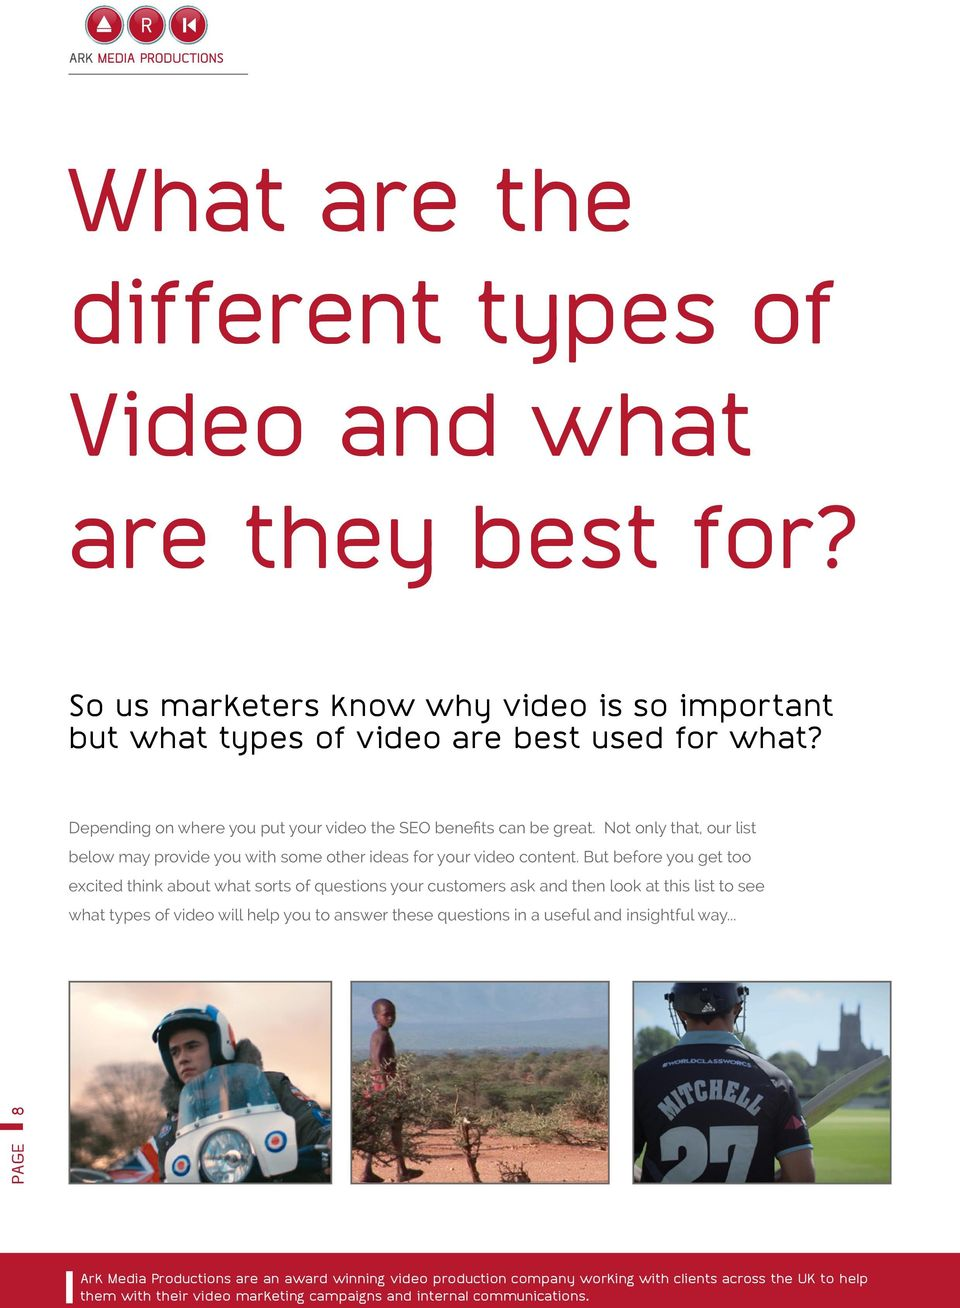 Depending on where you put your video the SEO benefits can be great.